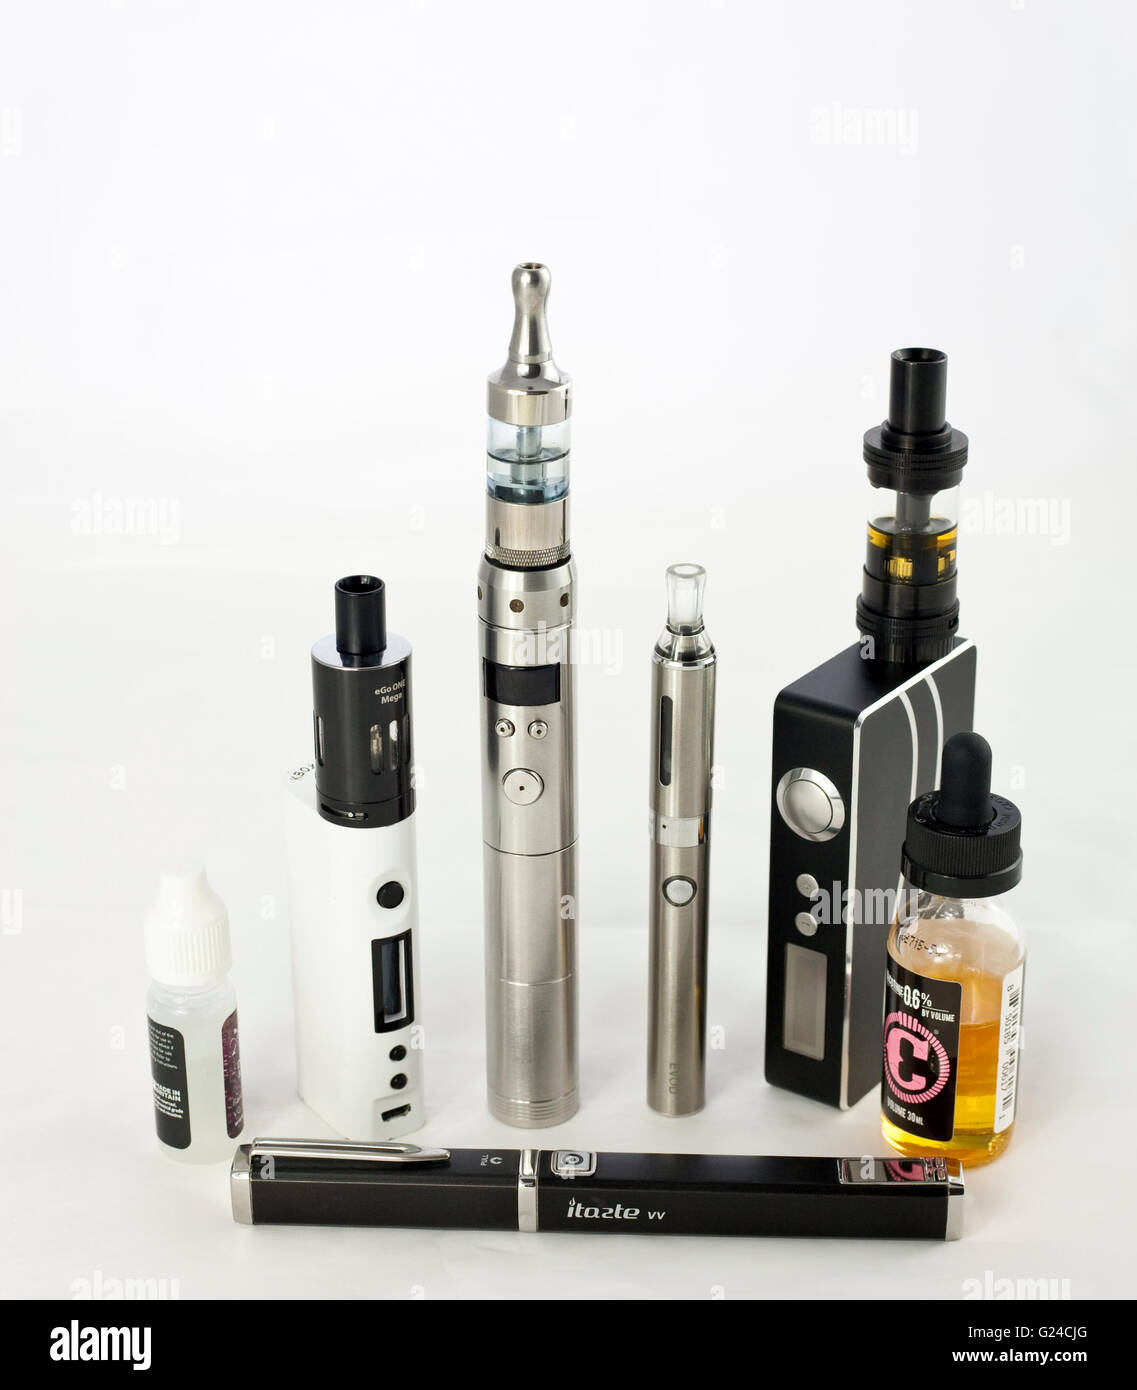 Electronic cigarette Malaysia side effects